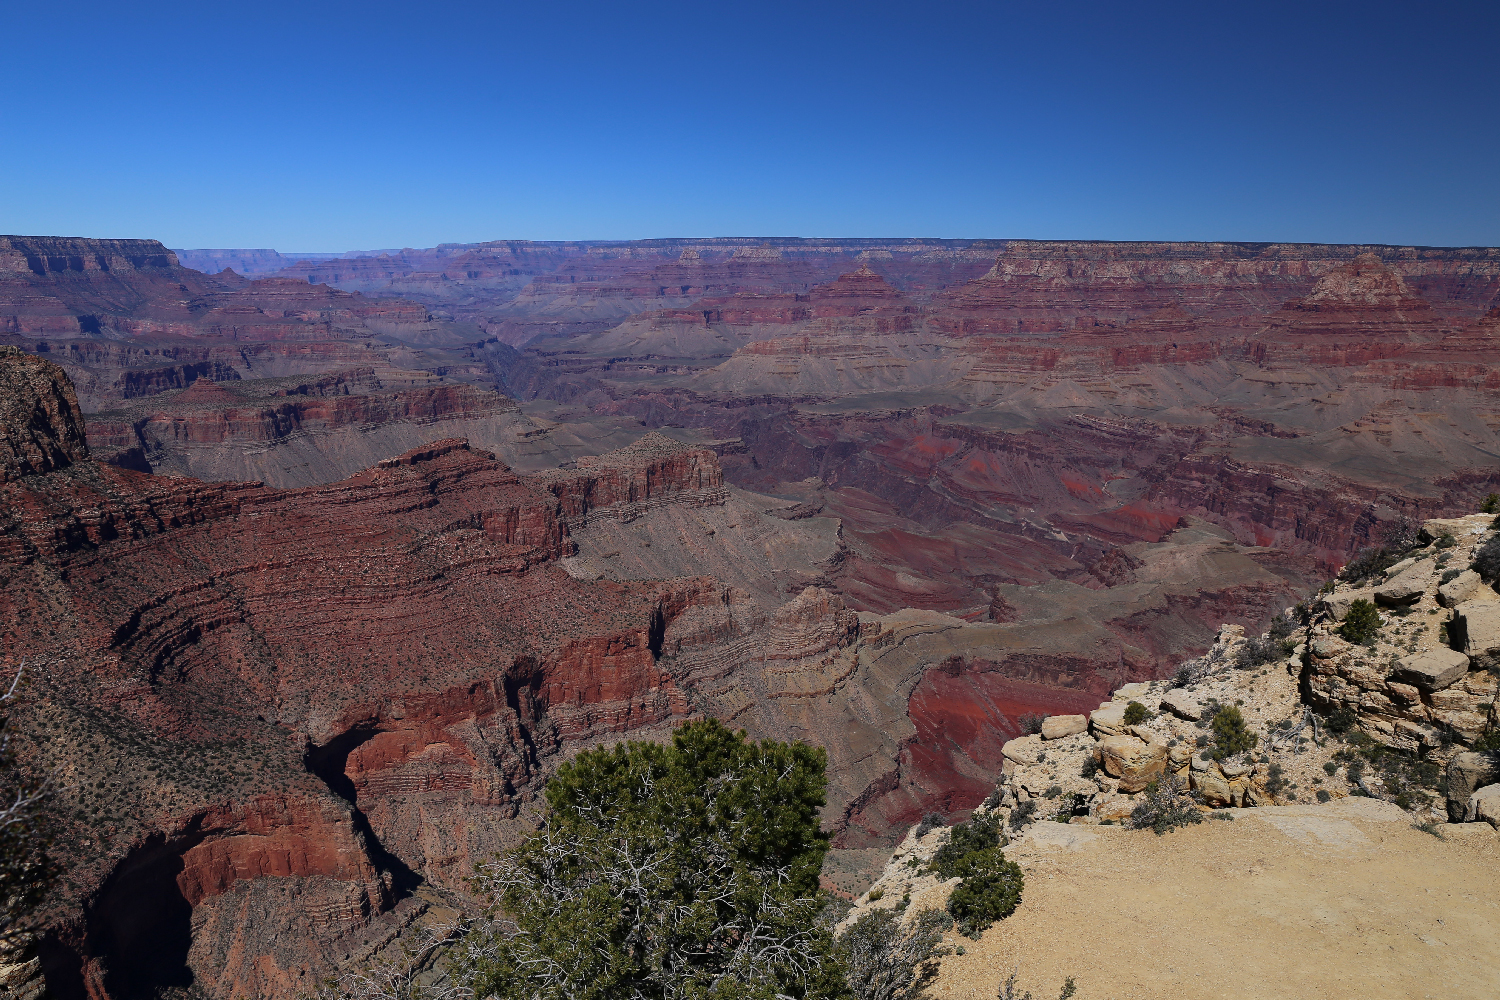 The Grand Canyon from the south rim.